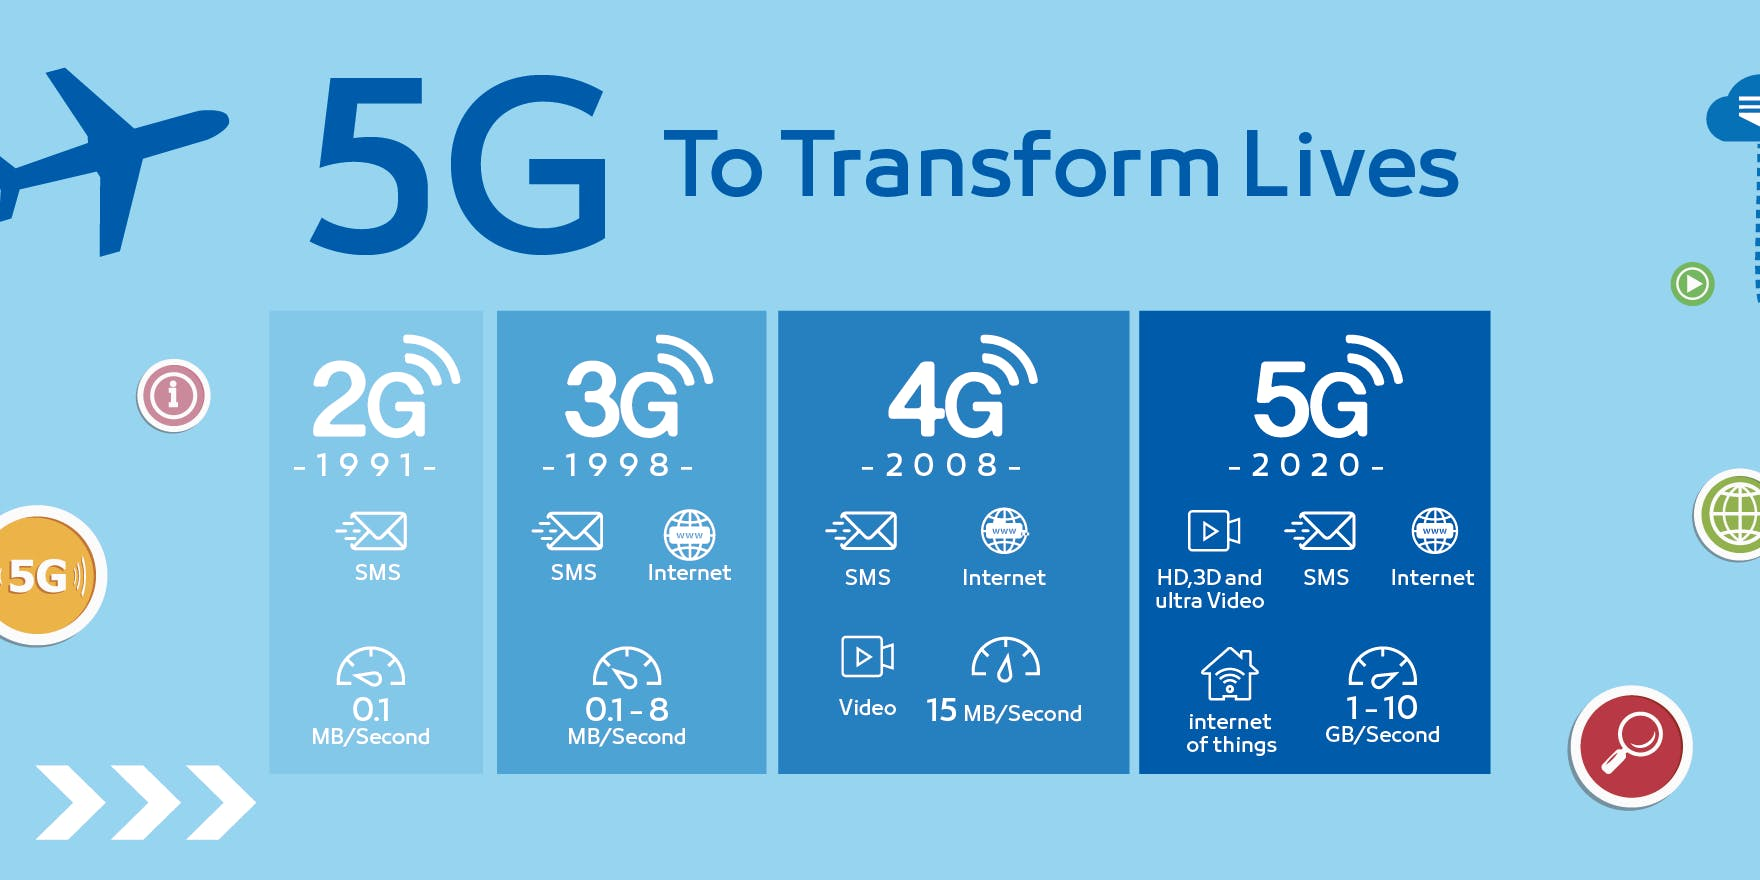 5G-To-Transforms-Lives-1760x880.png